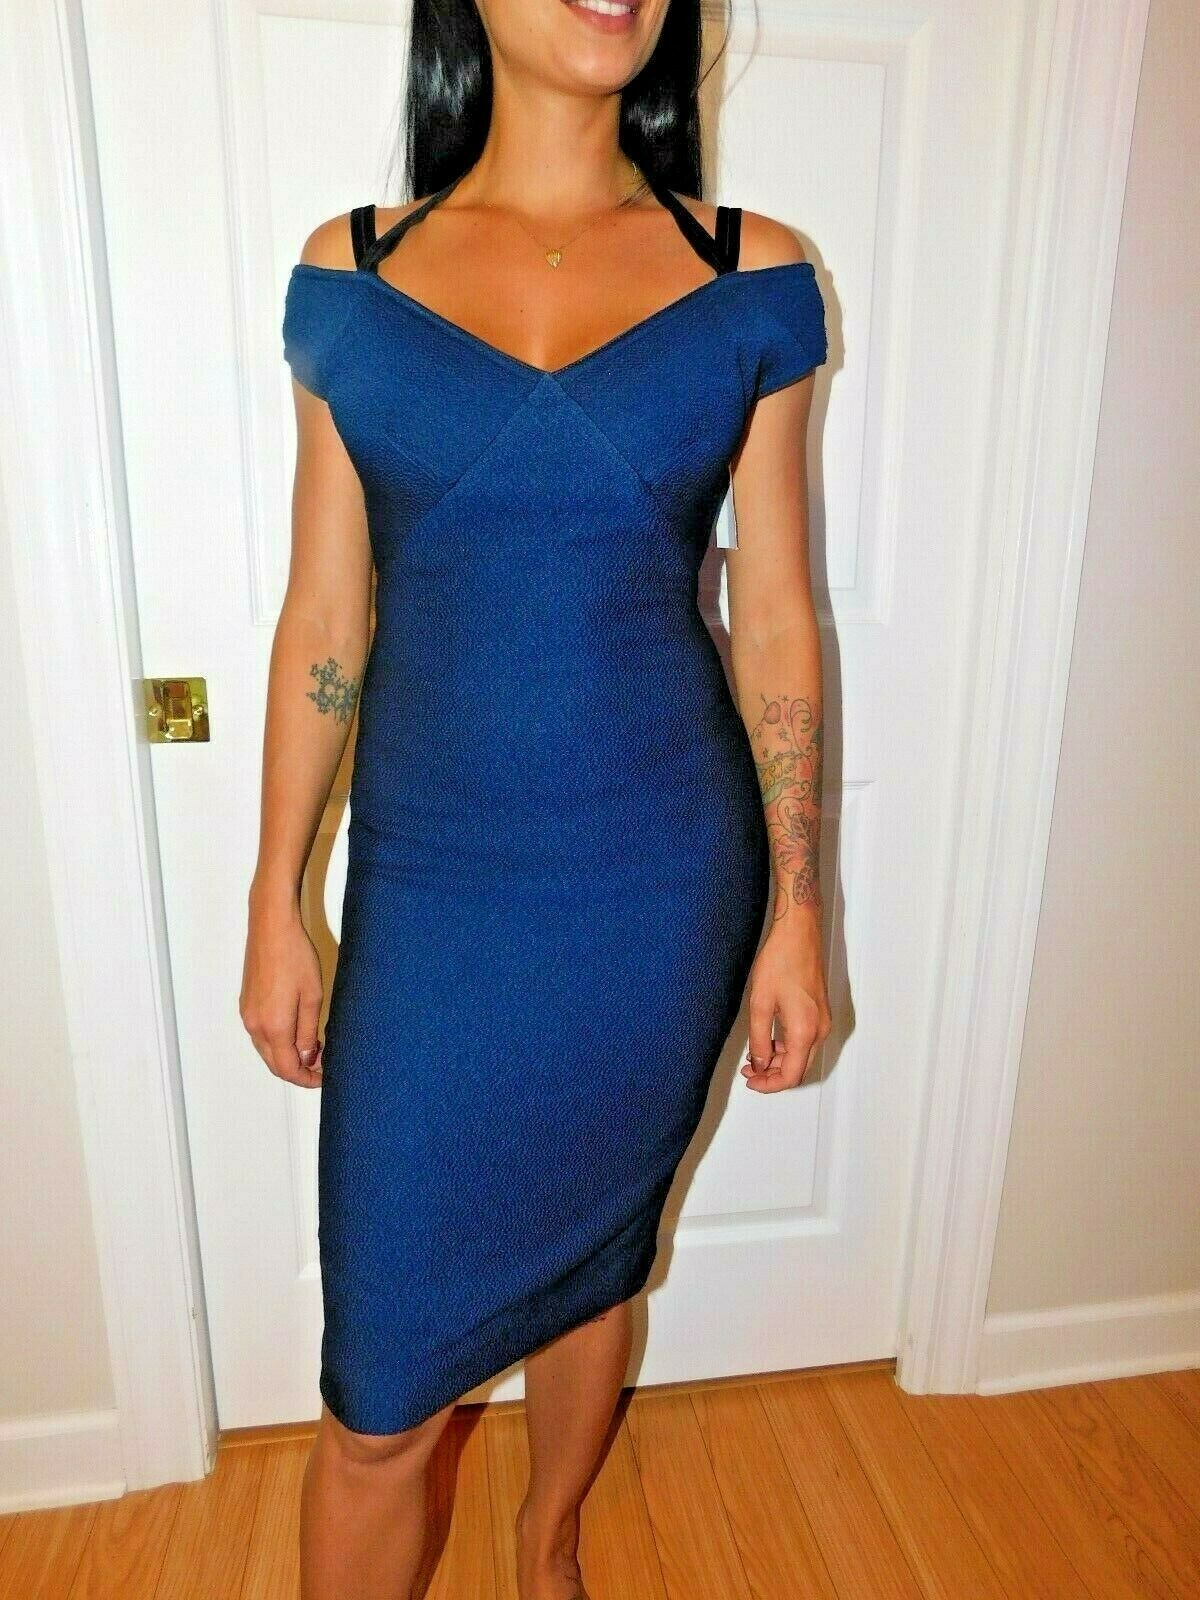 YIGAL AZROUEL OFF SHOULDER COCKTAIL  DRESS SIZE 14 NEW $990 image 4